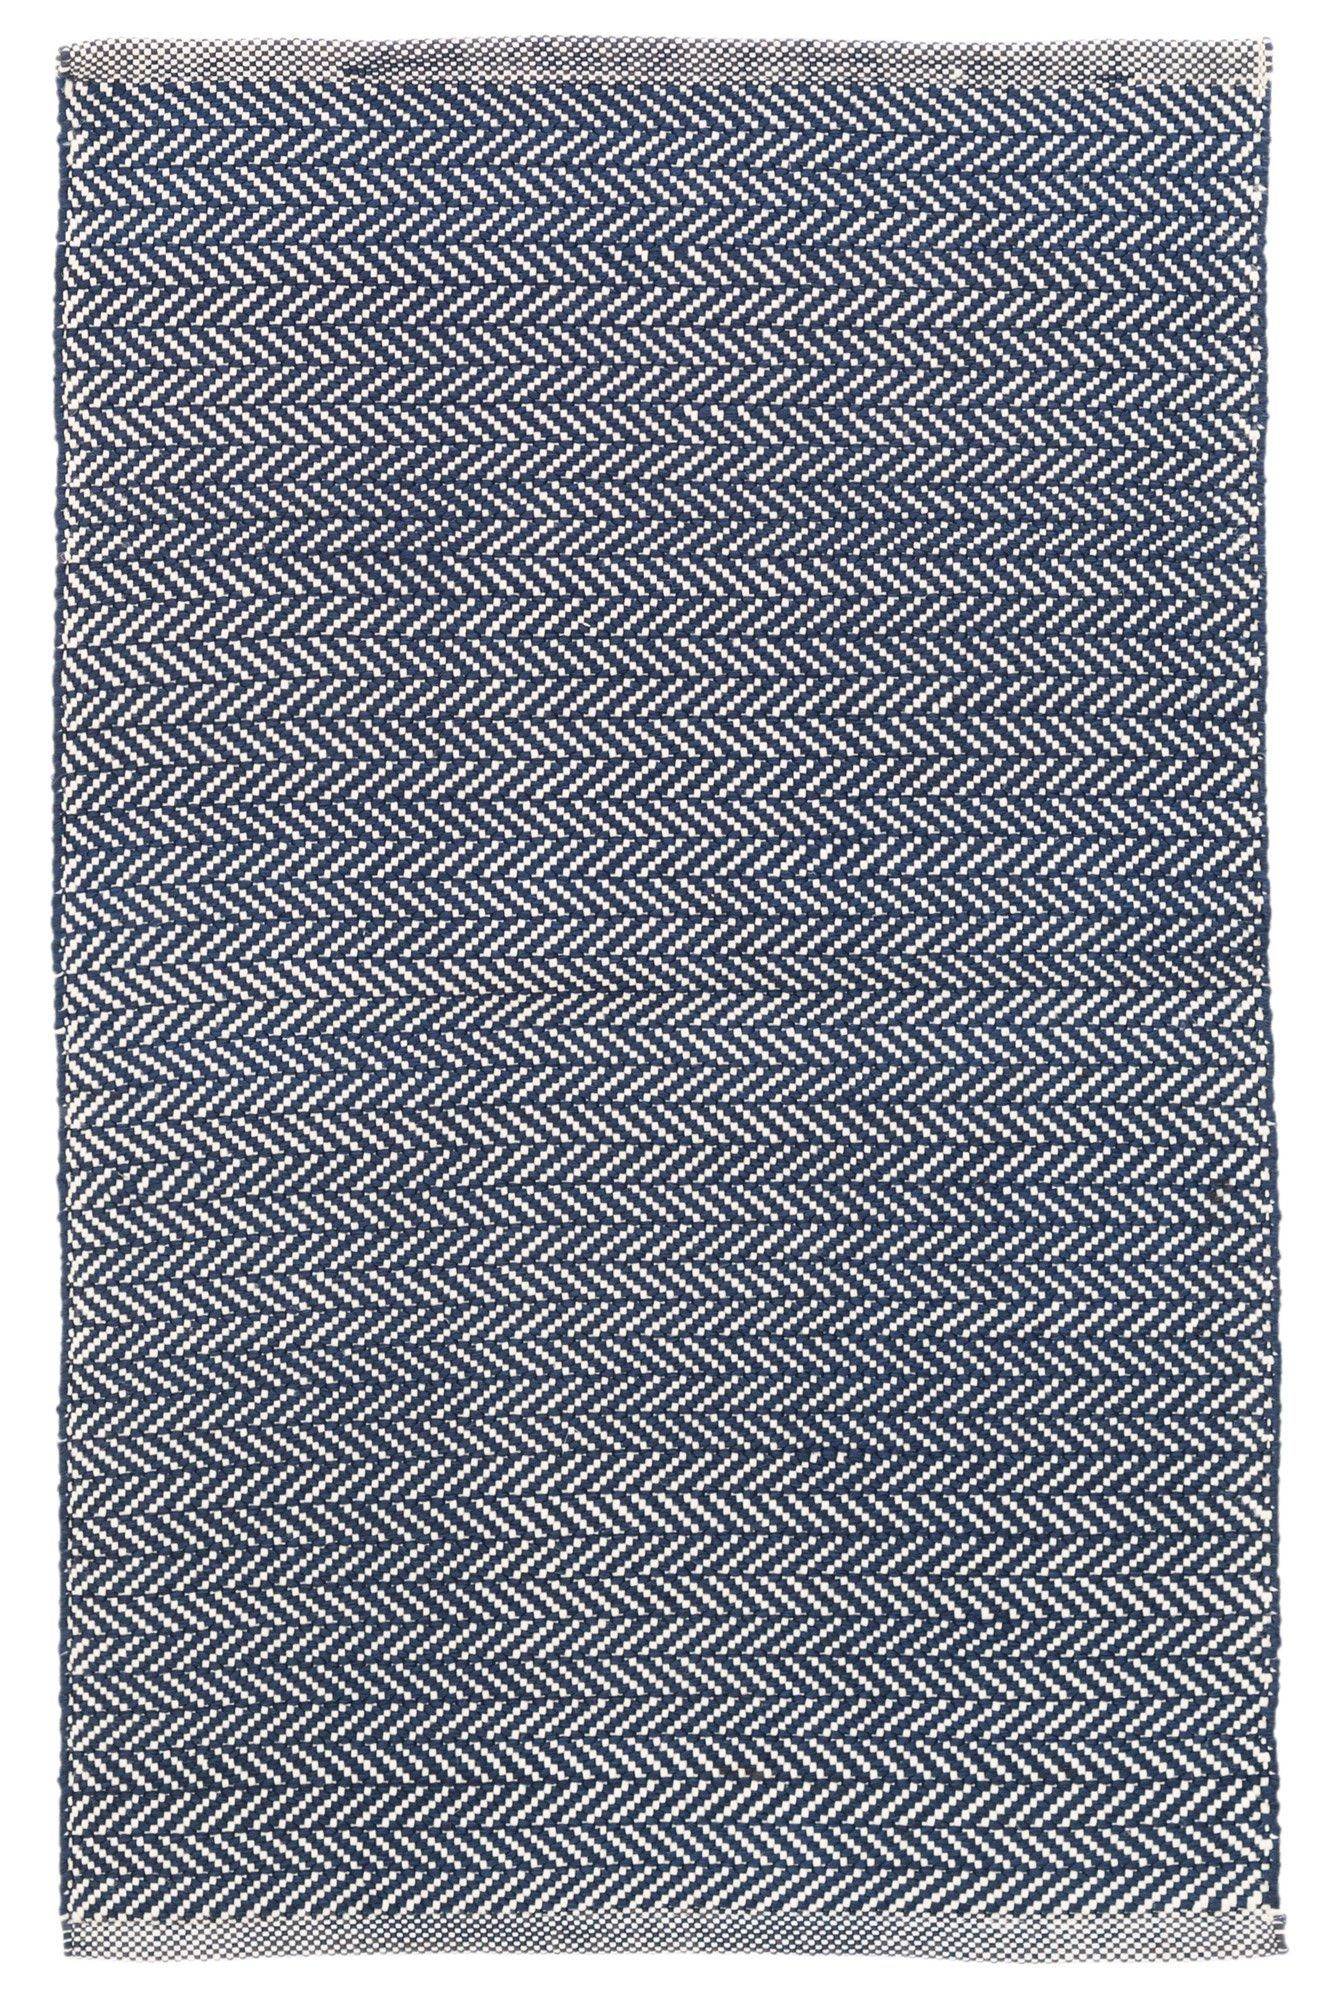 Primary Color Navy Ivory Product Type Area Rug Material Details Polypropylene Dimensions Size 10 X 14 Overall Weight 32 Lbs